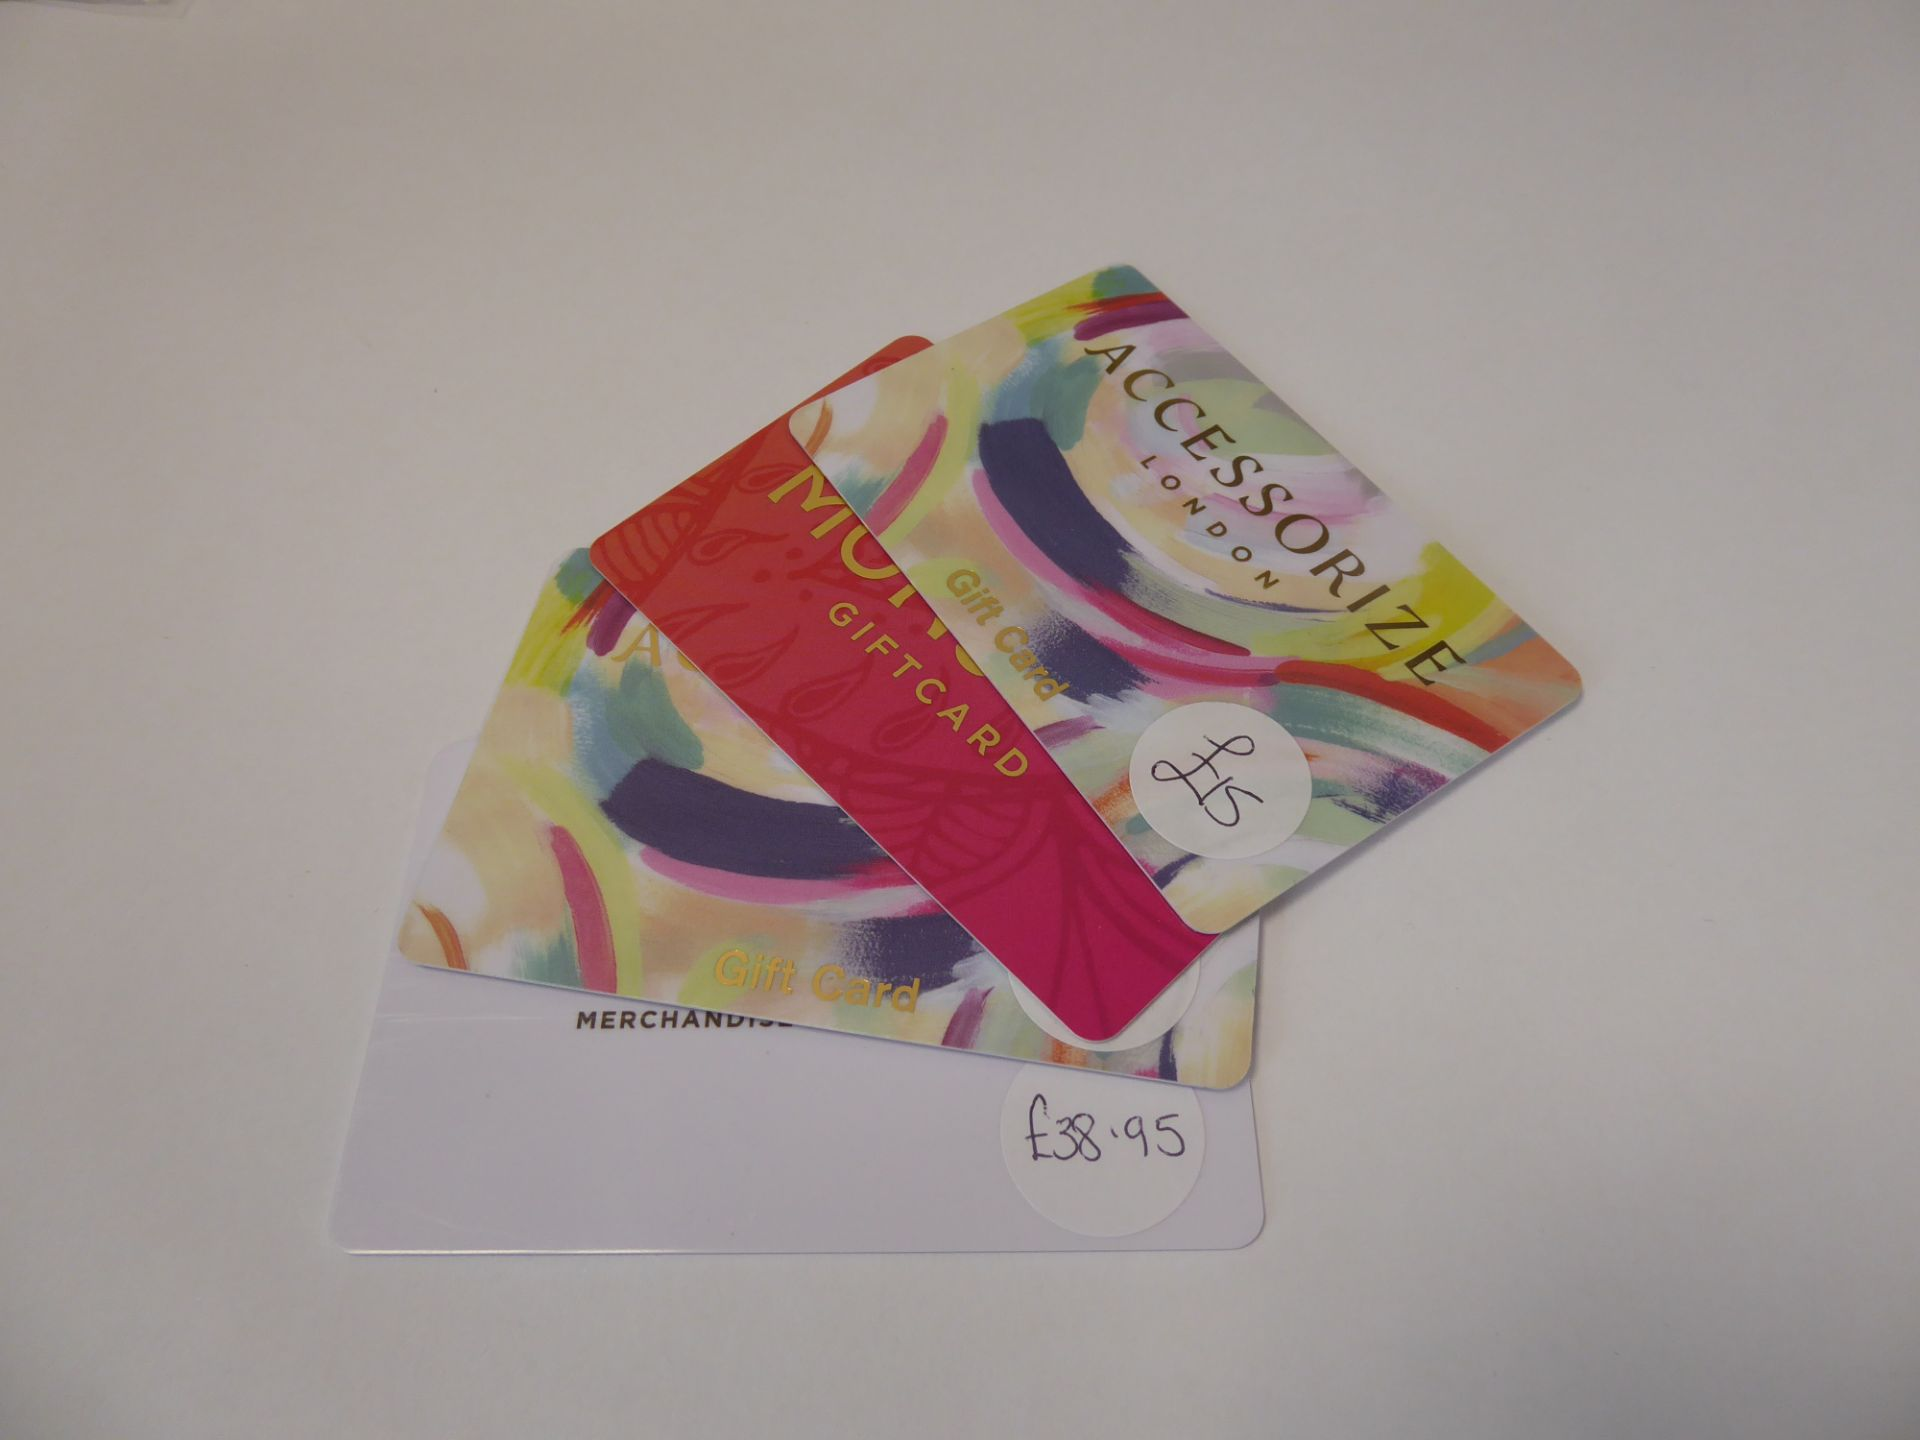 Monsoon (x4) - Total face value £93.95